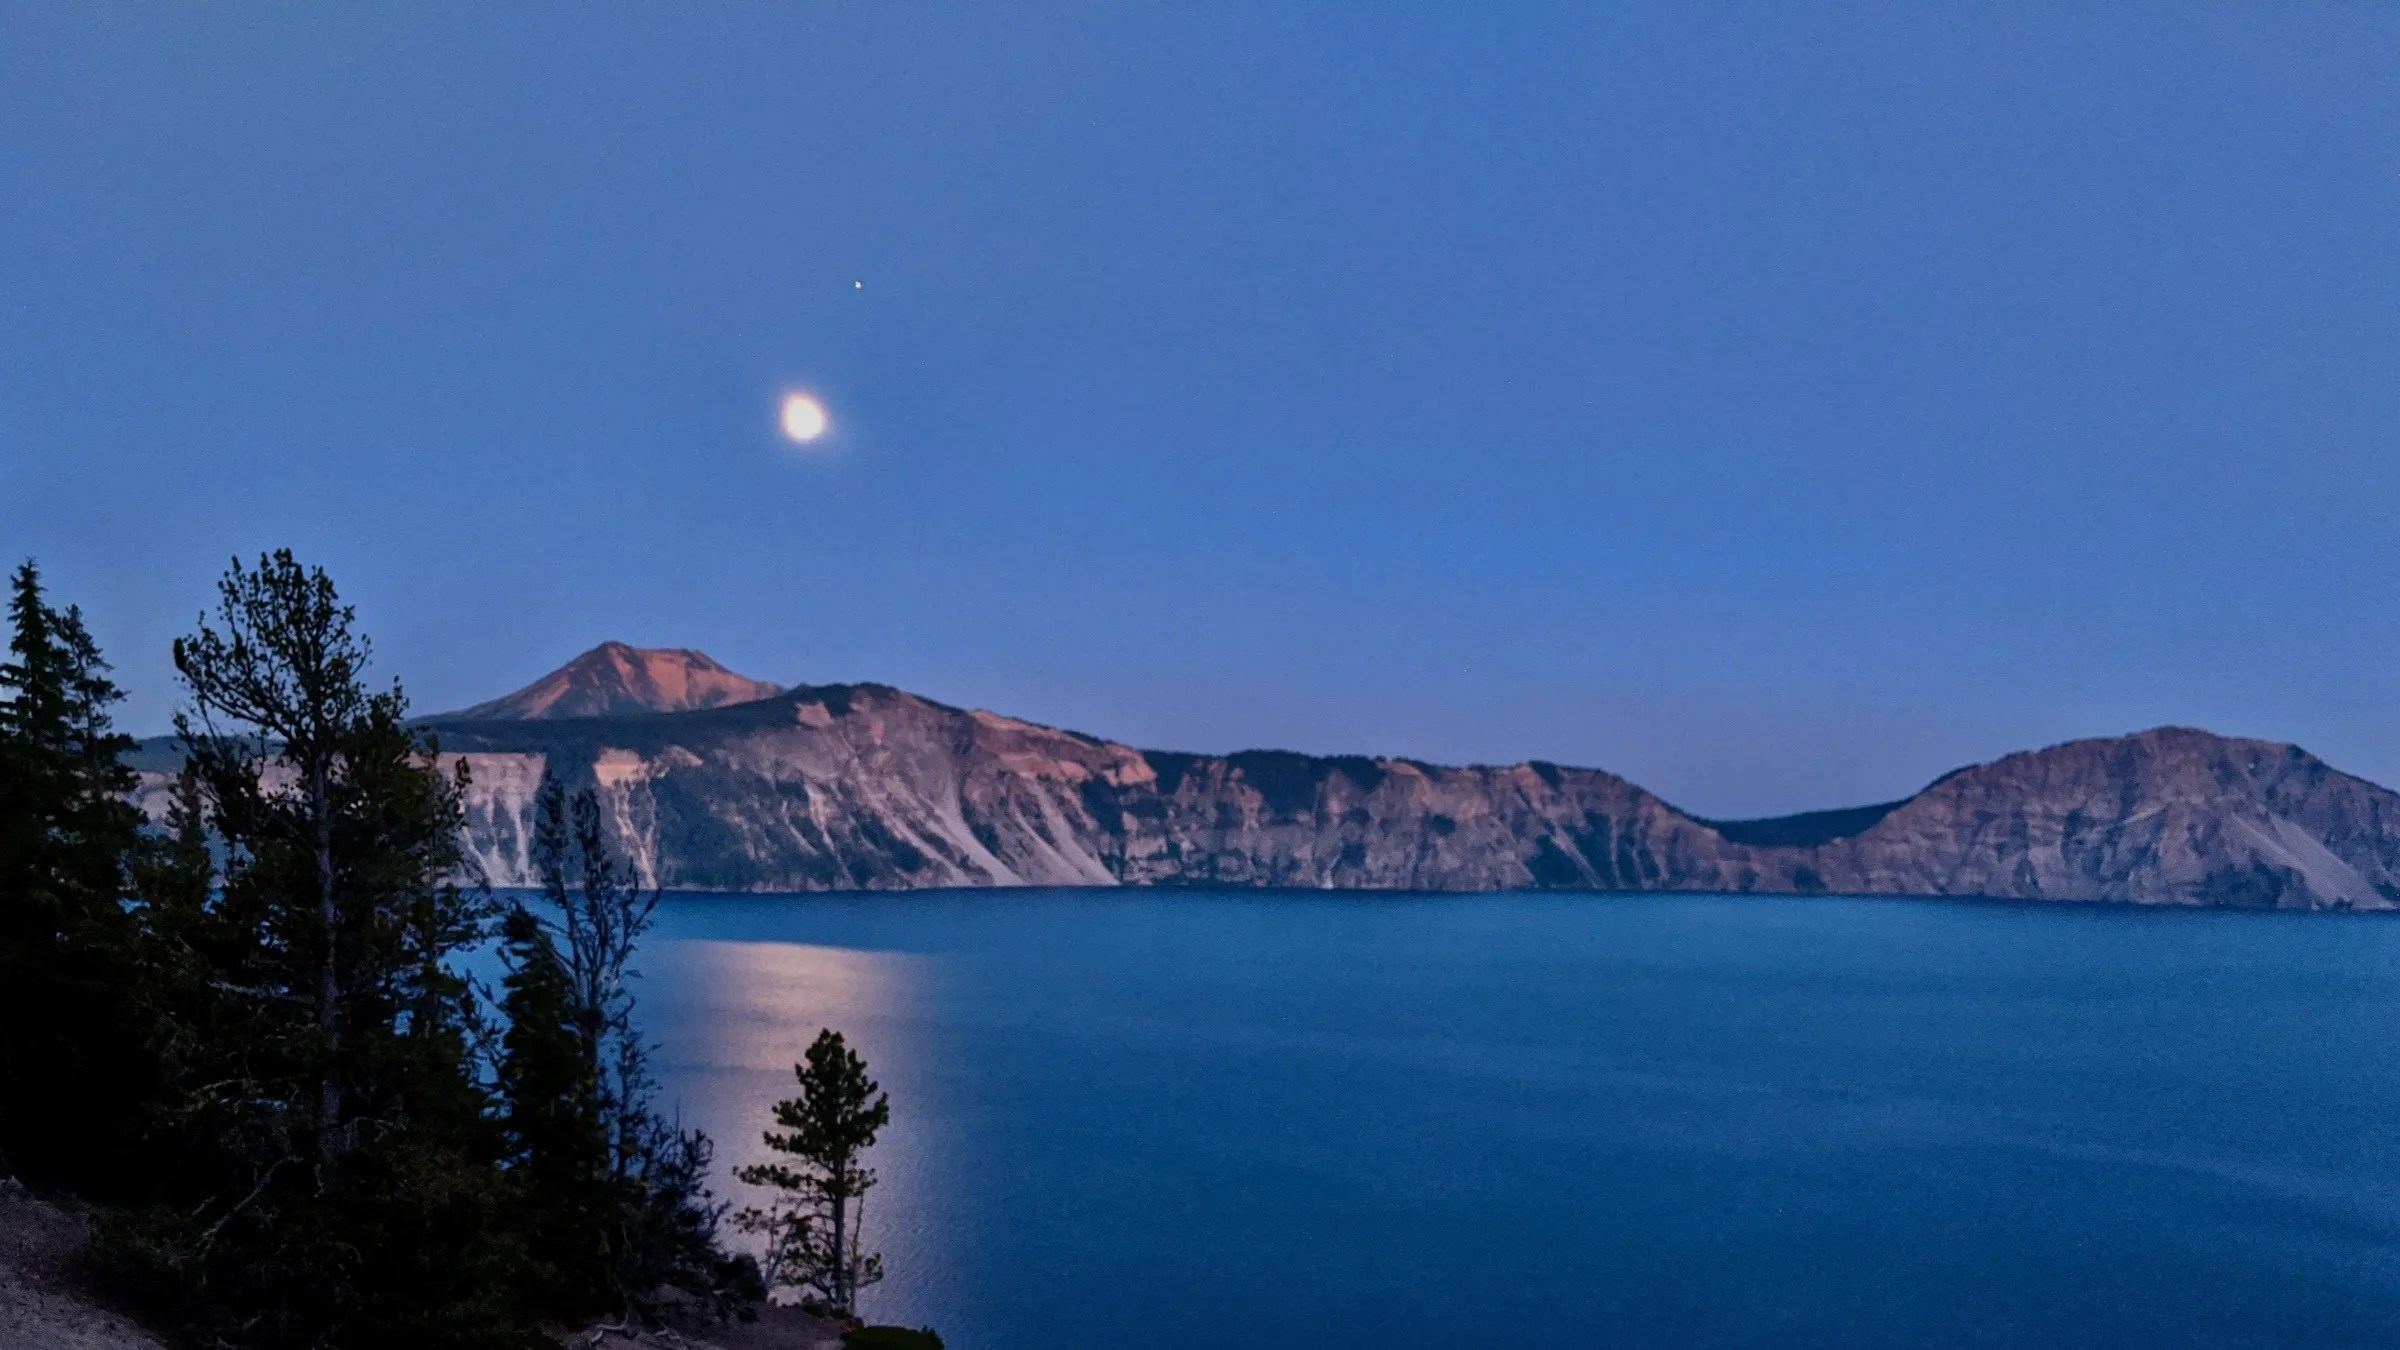 The moon rising over the east rim of Crater Lake